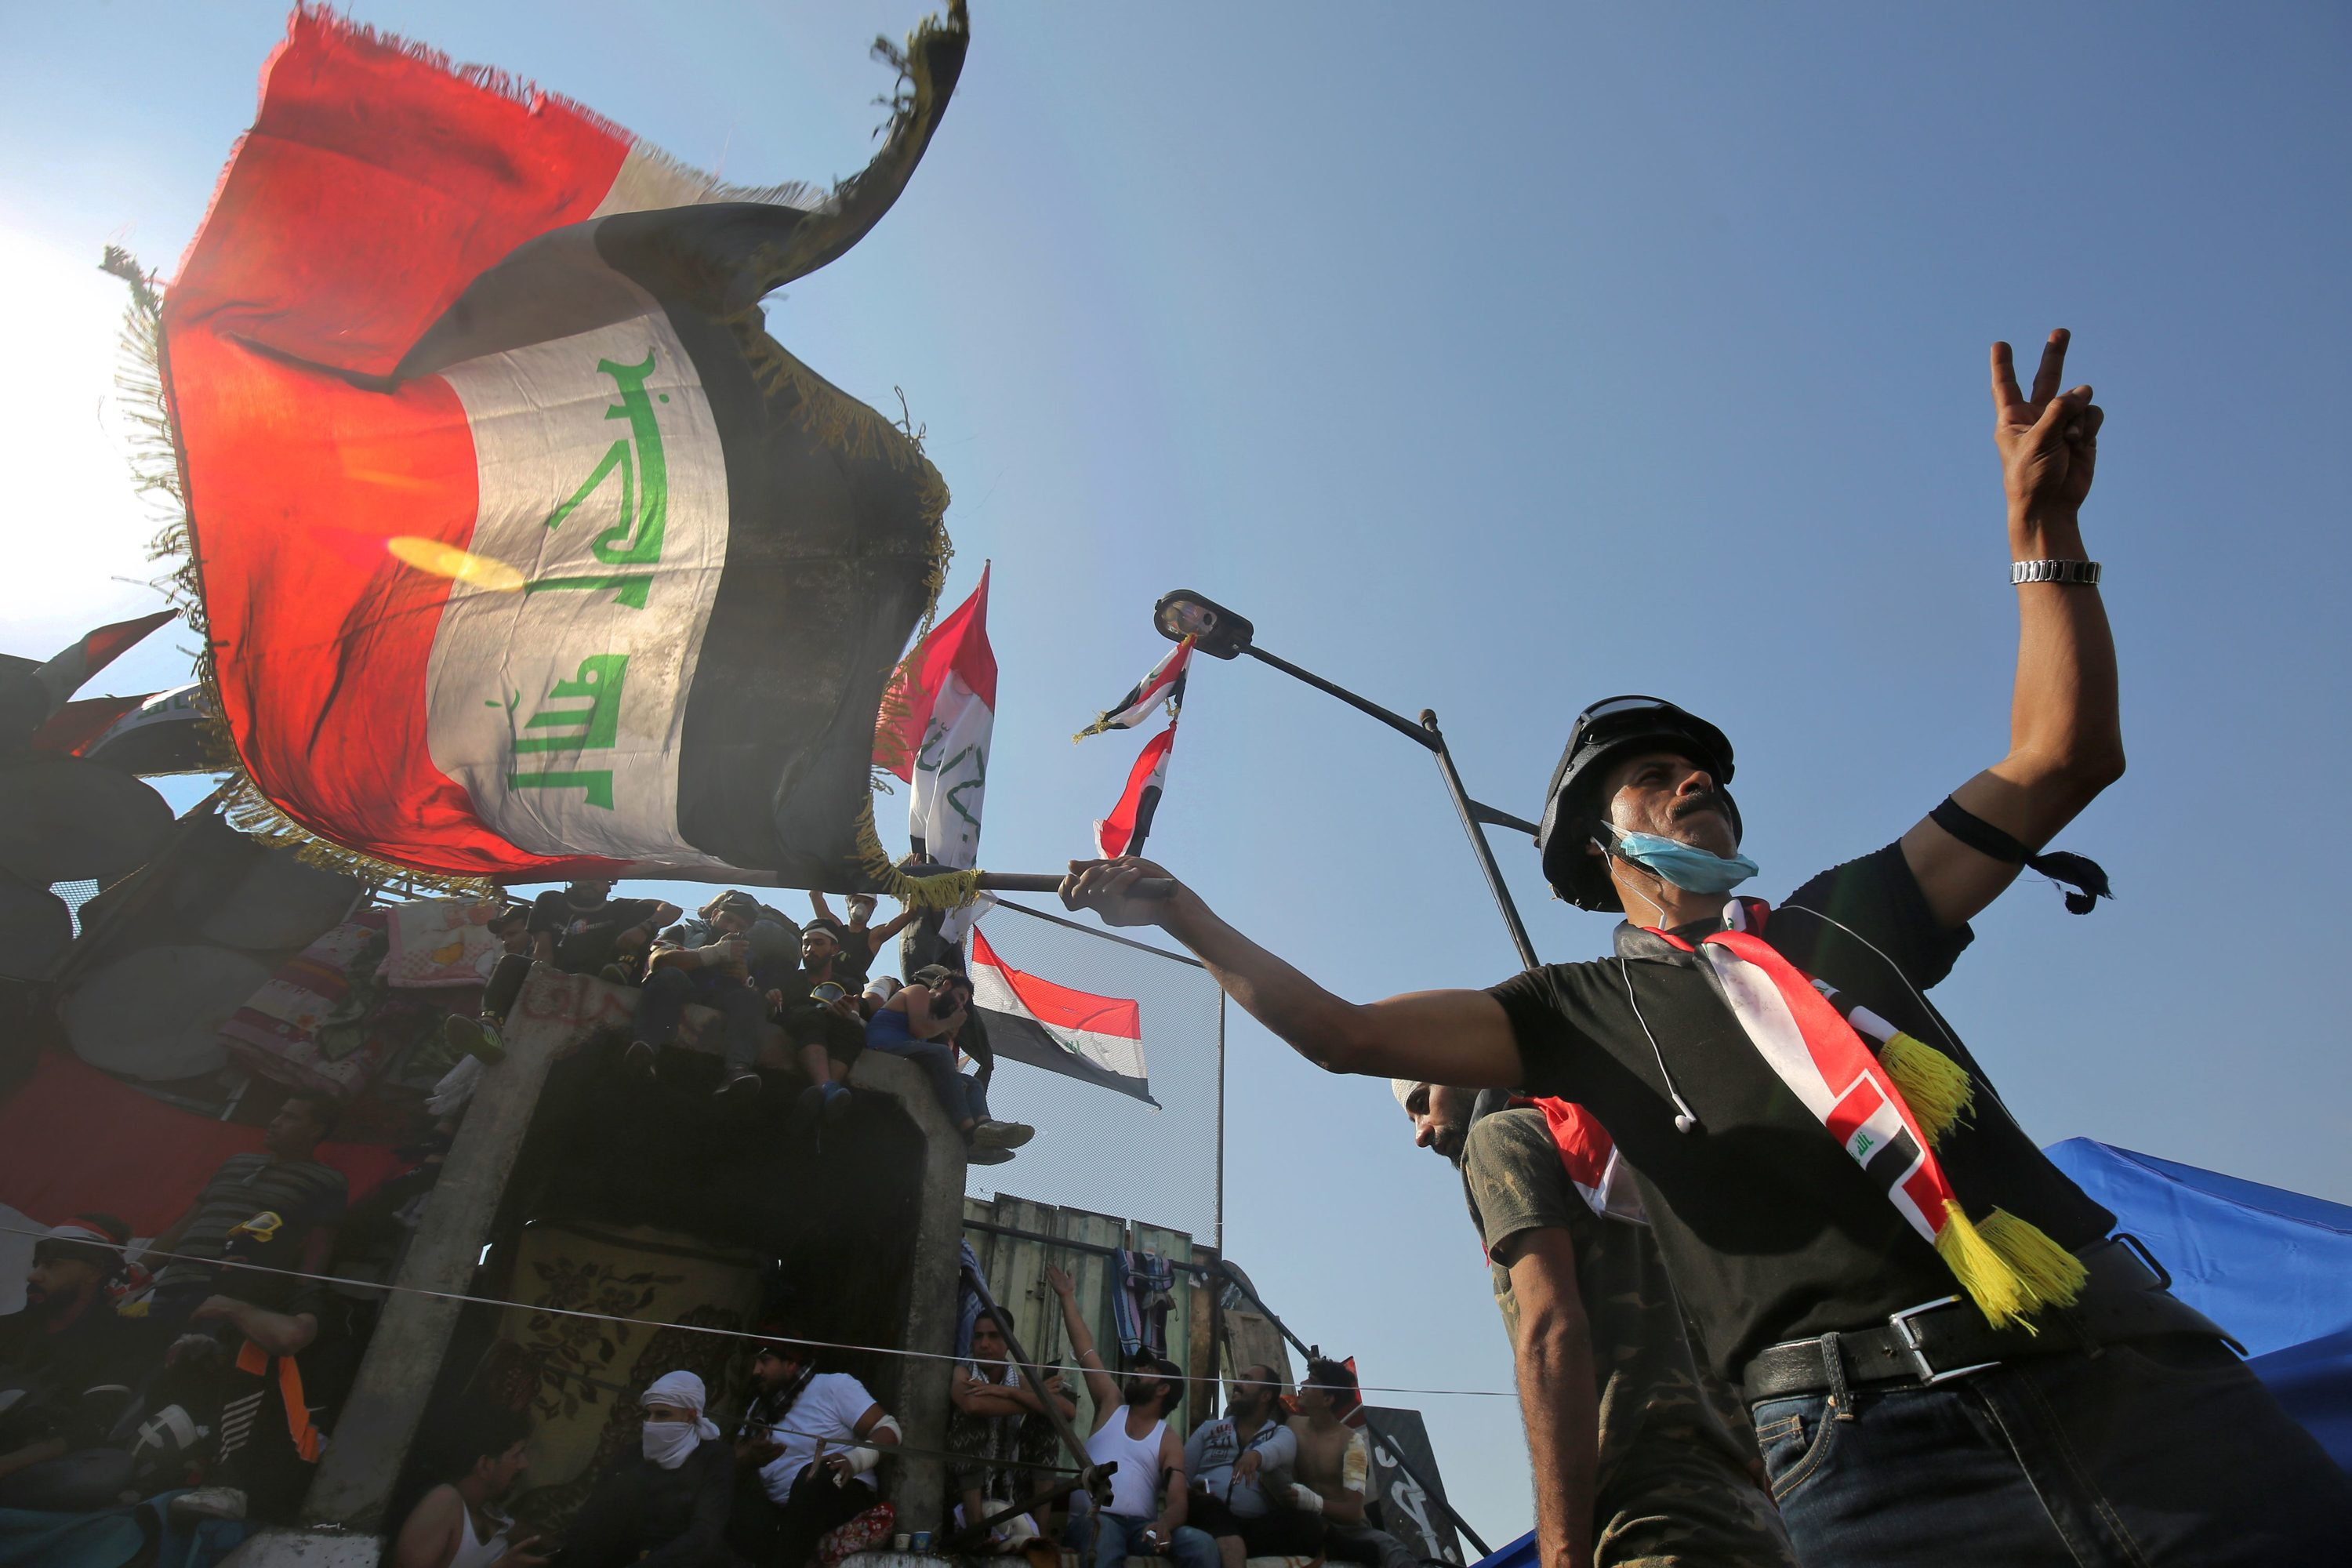 Iran's Order in the Middle East is Beginning to Crack